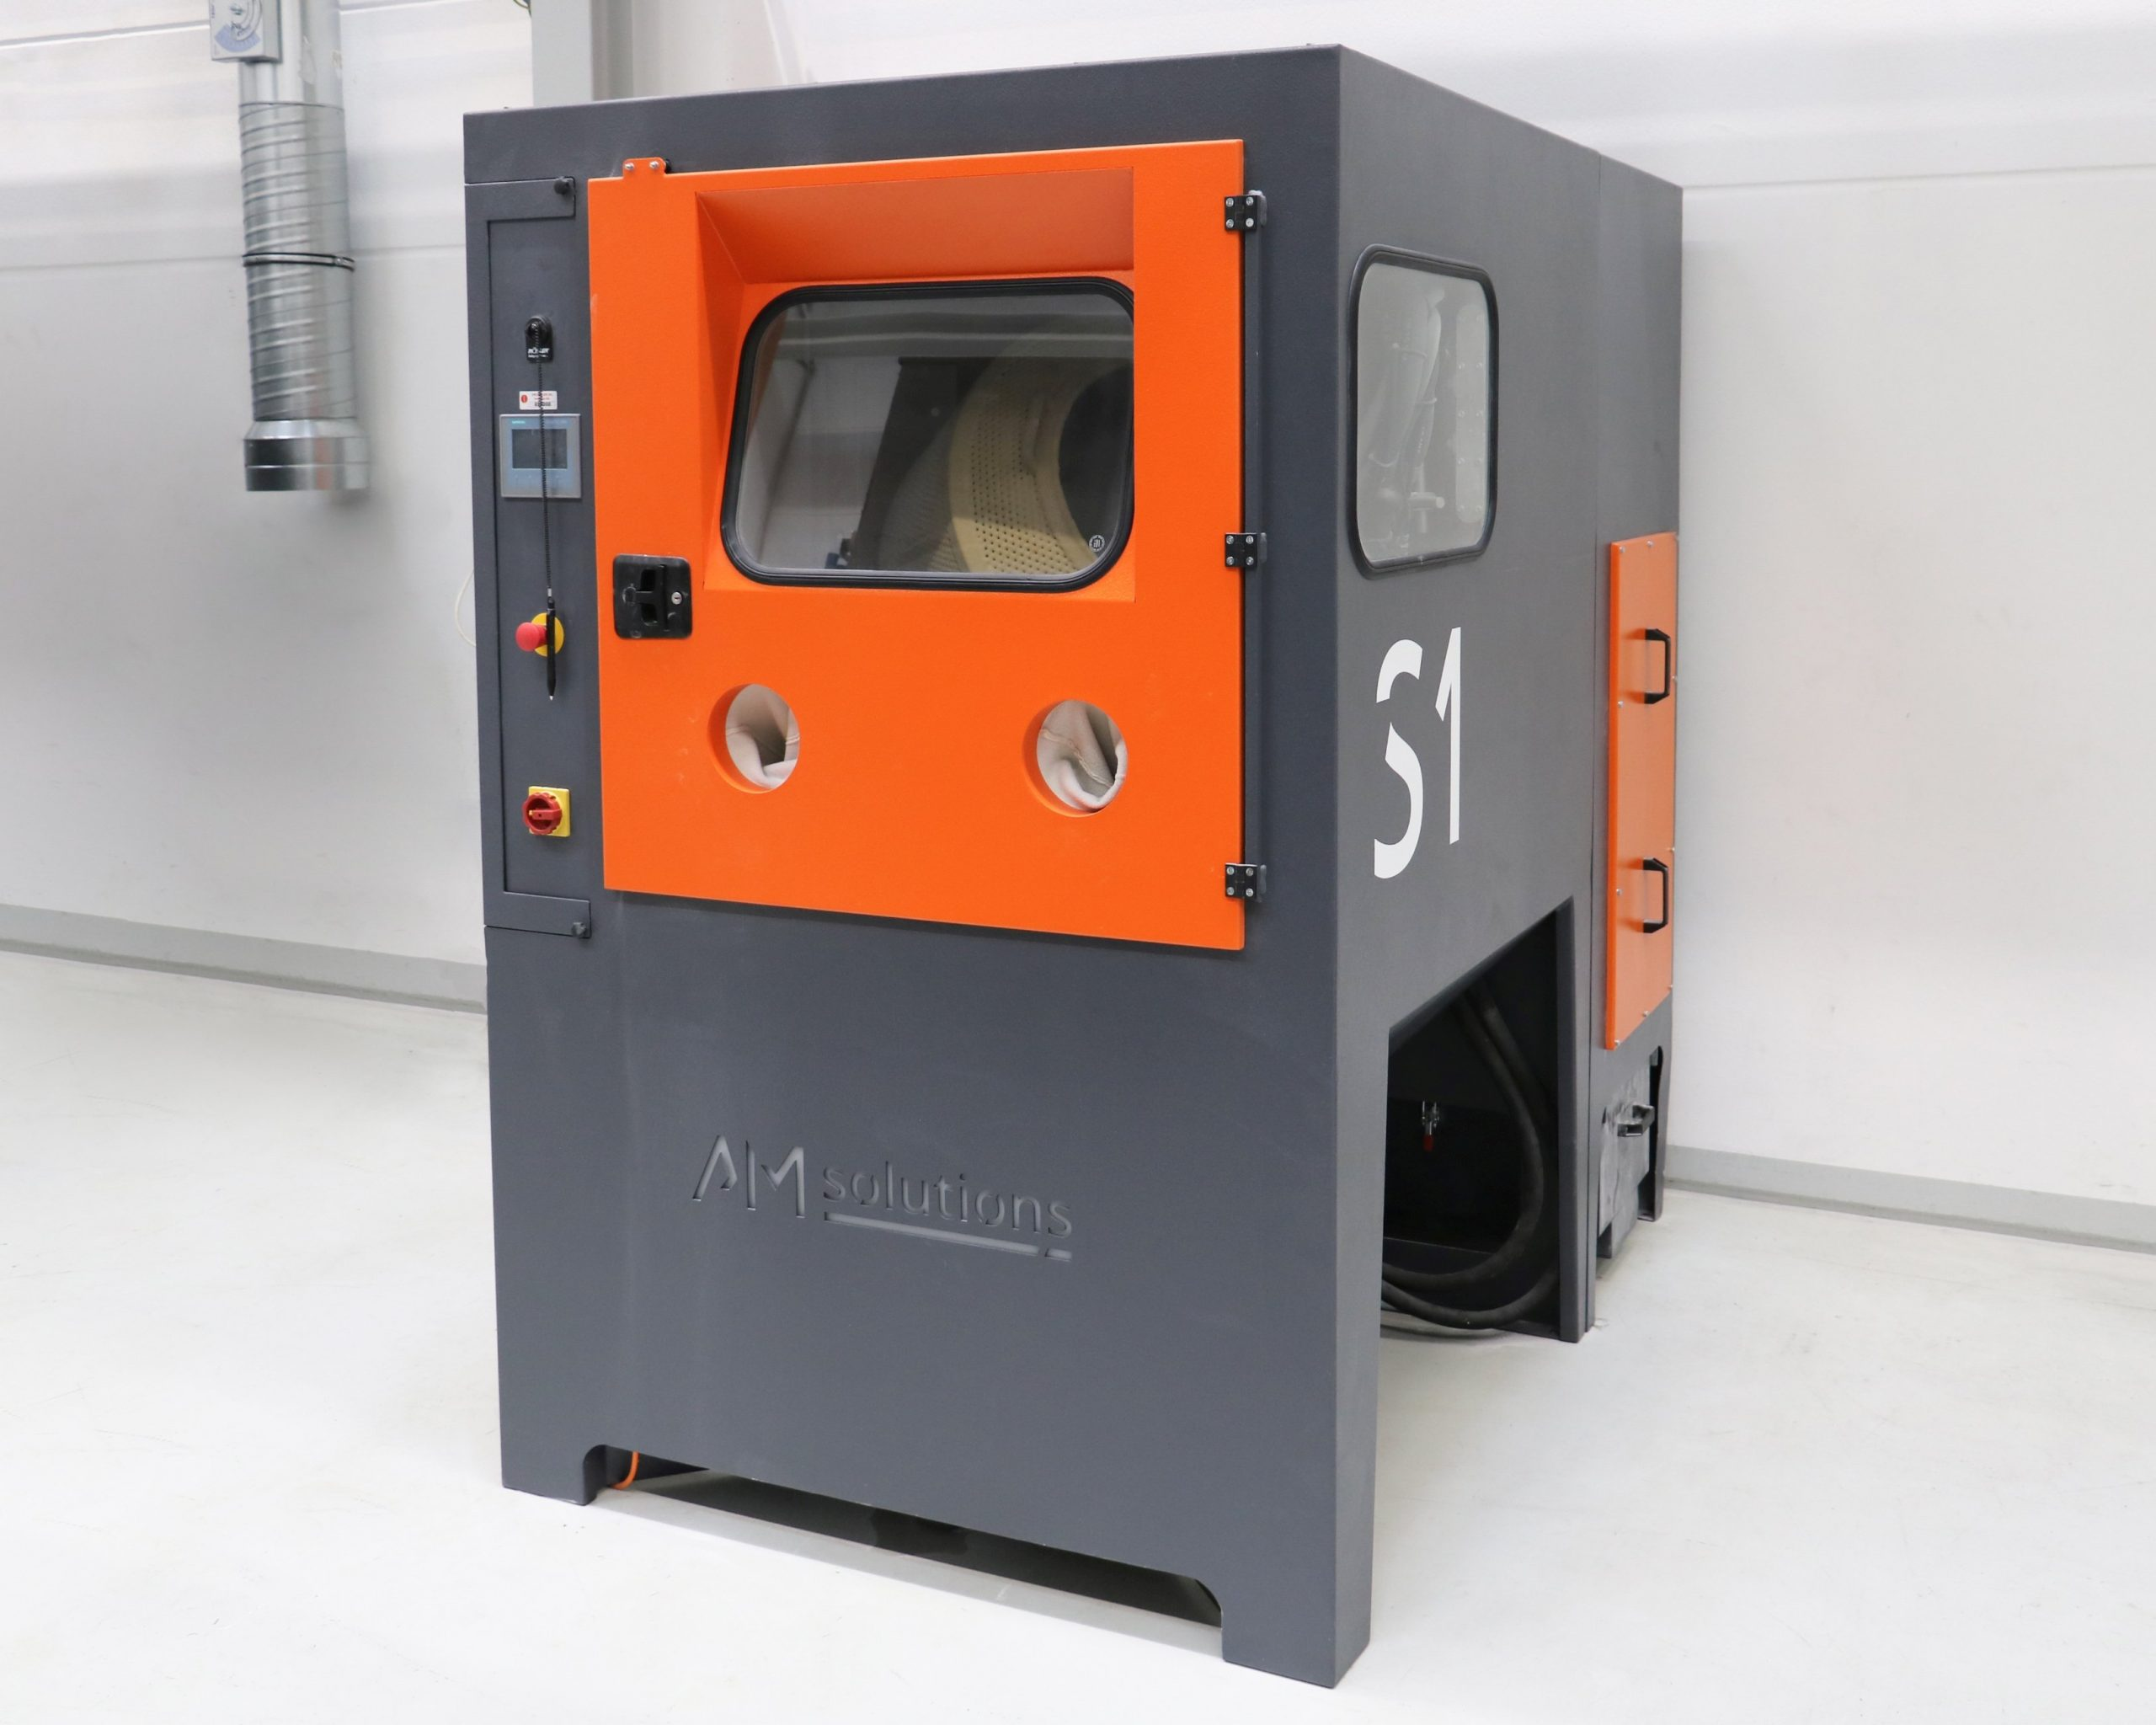 The new S 1 system from AM Solutions – 3D post processing technology for the automated de-powdering and cleaning of 3D printed plastic components. Image via AM Solutions.